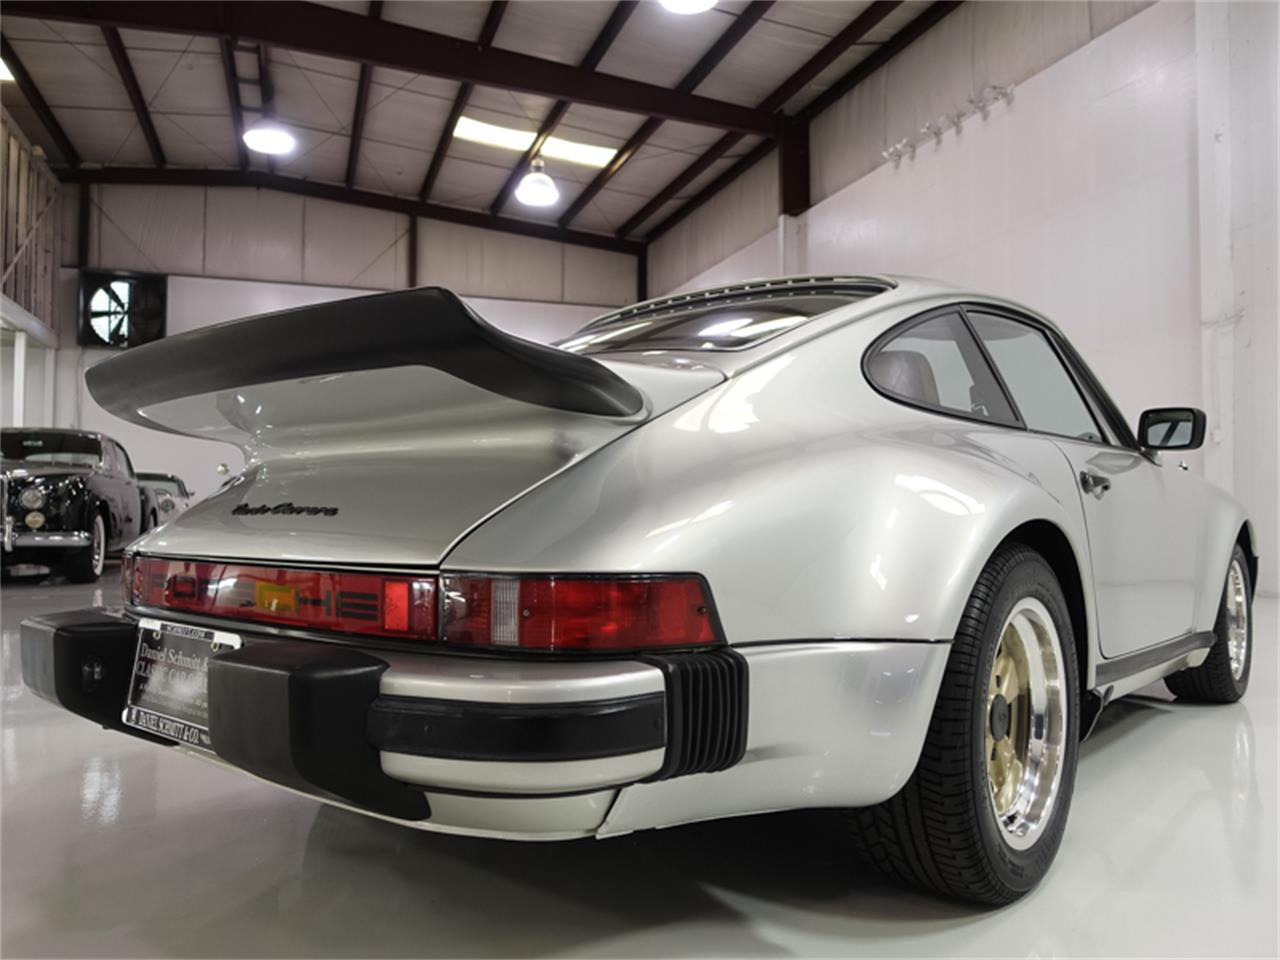 Large Picture of '76 930 Turbo located in Missouri - $229,900.00 Offered by Daniel Schmitt & Co. - FXKC